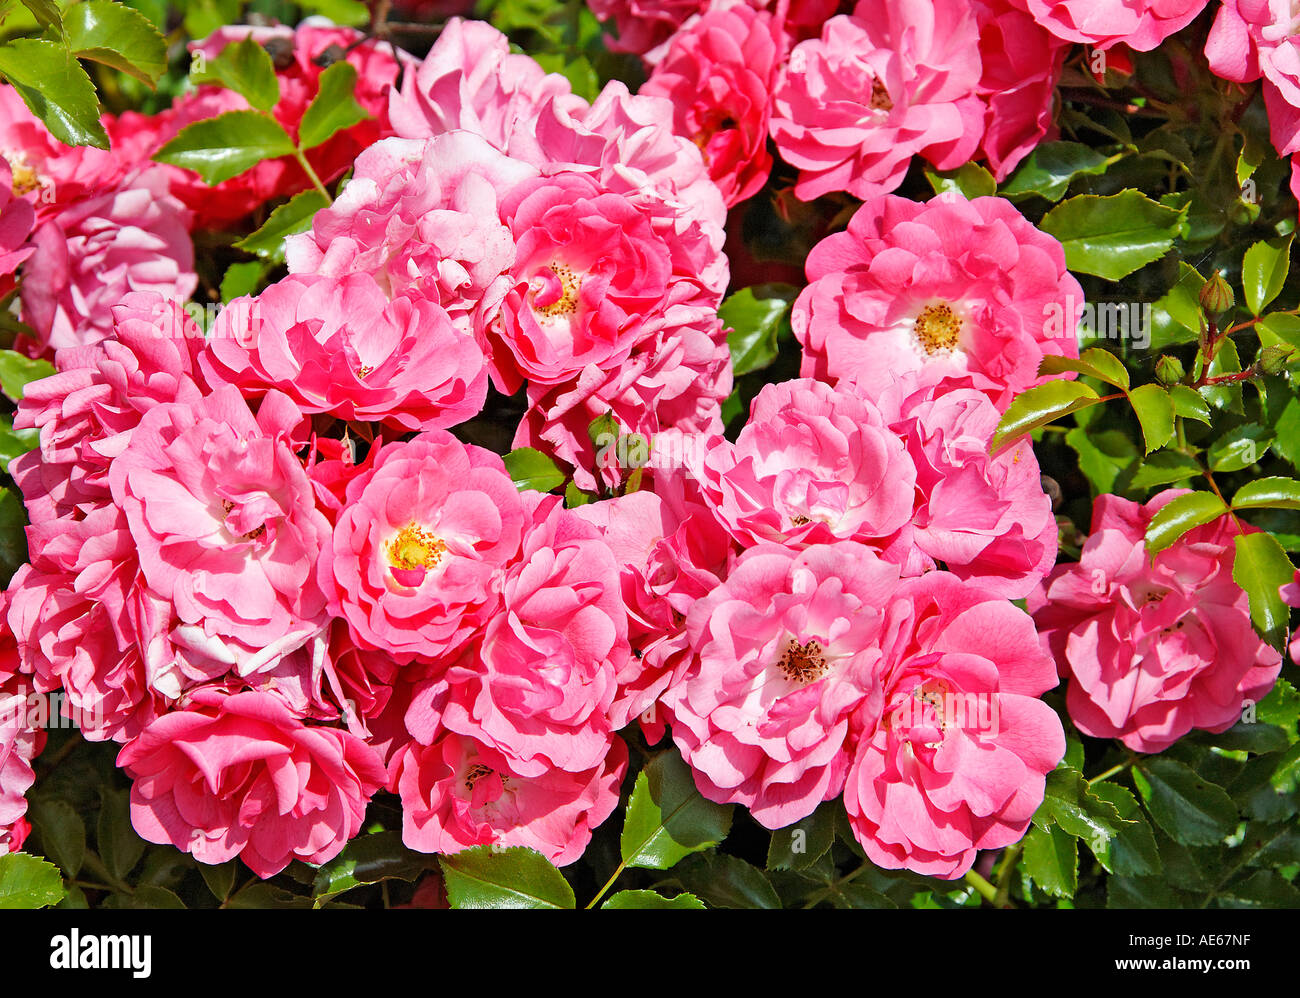 Glorious roses - Stock Image